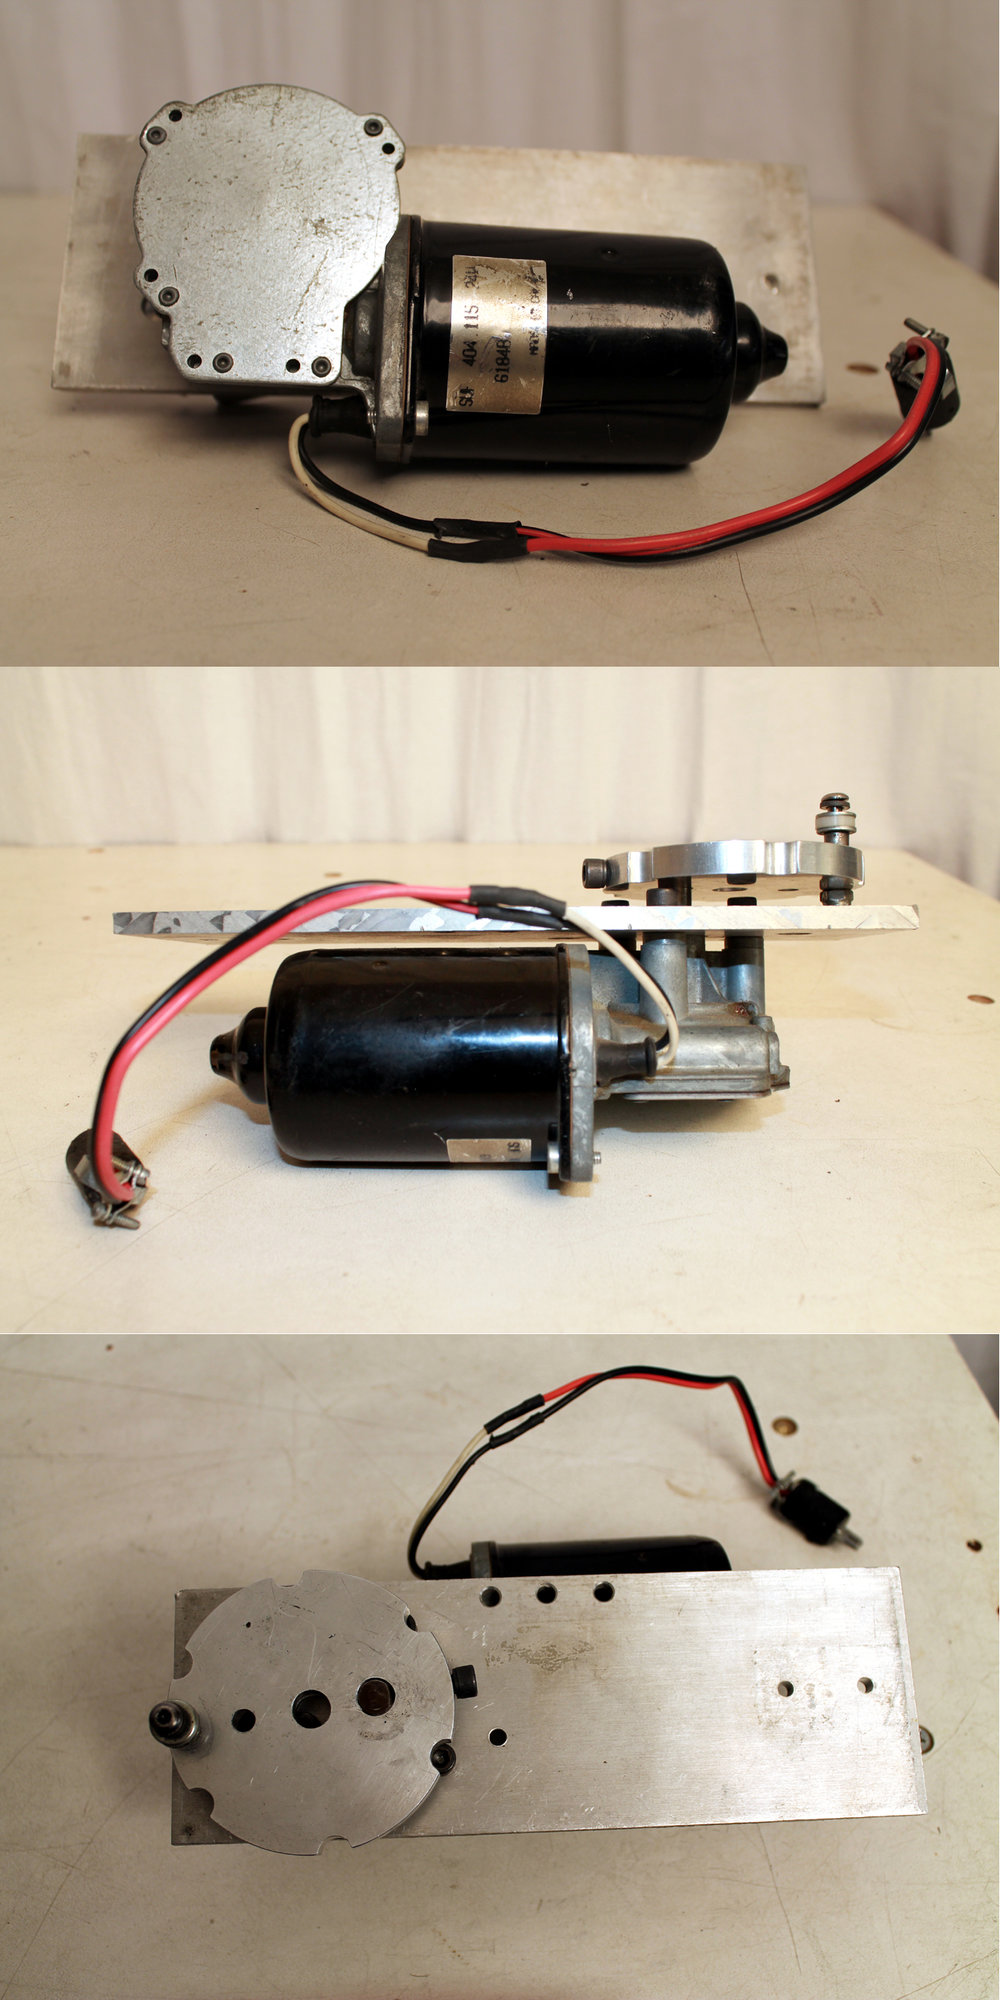 Motor, Mounting Plate, and crank